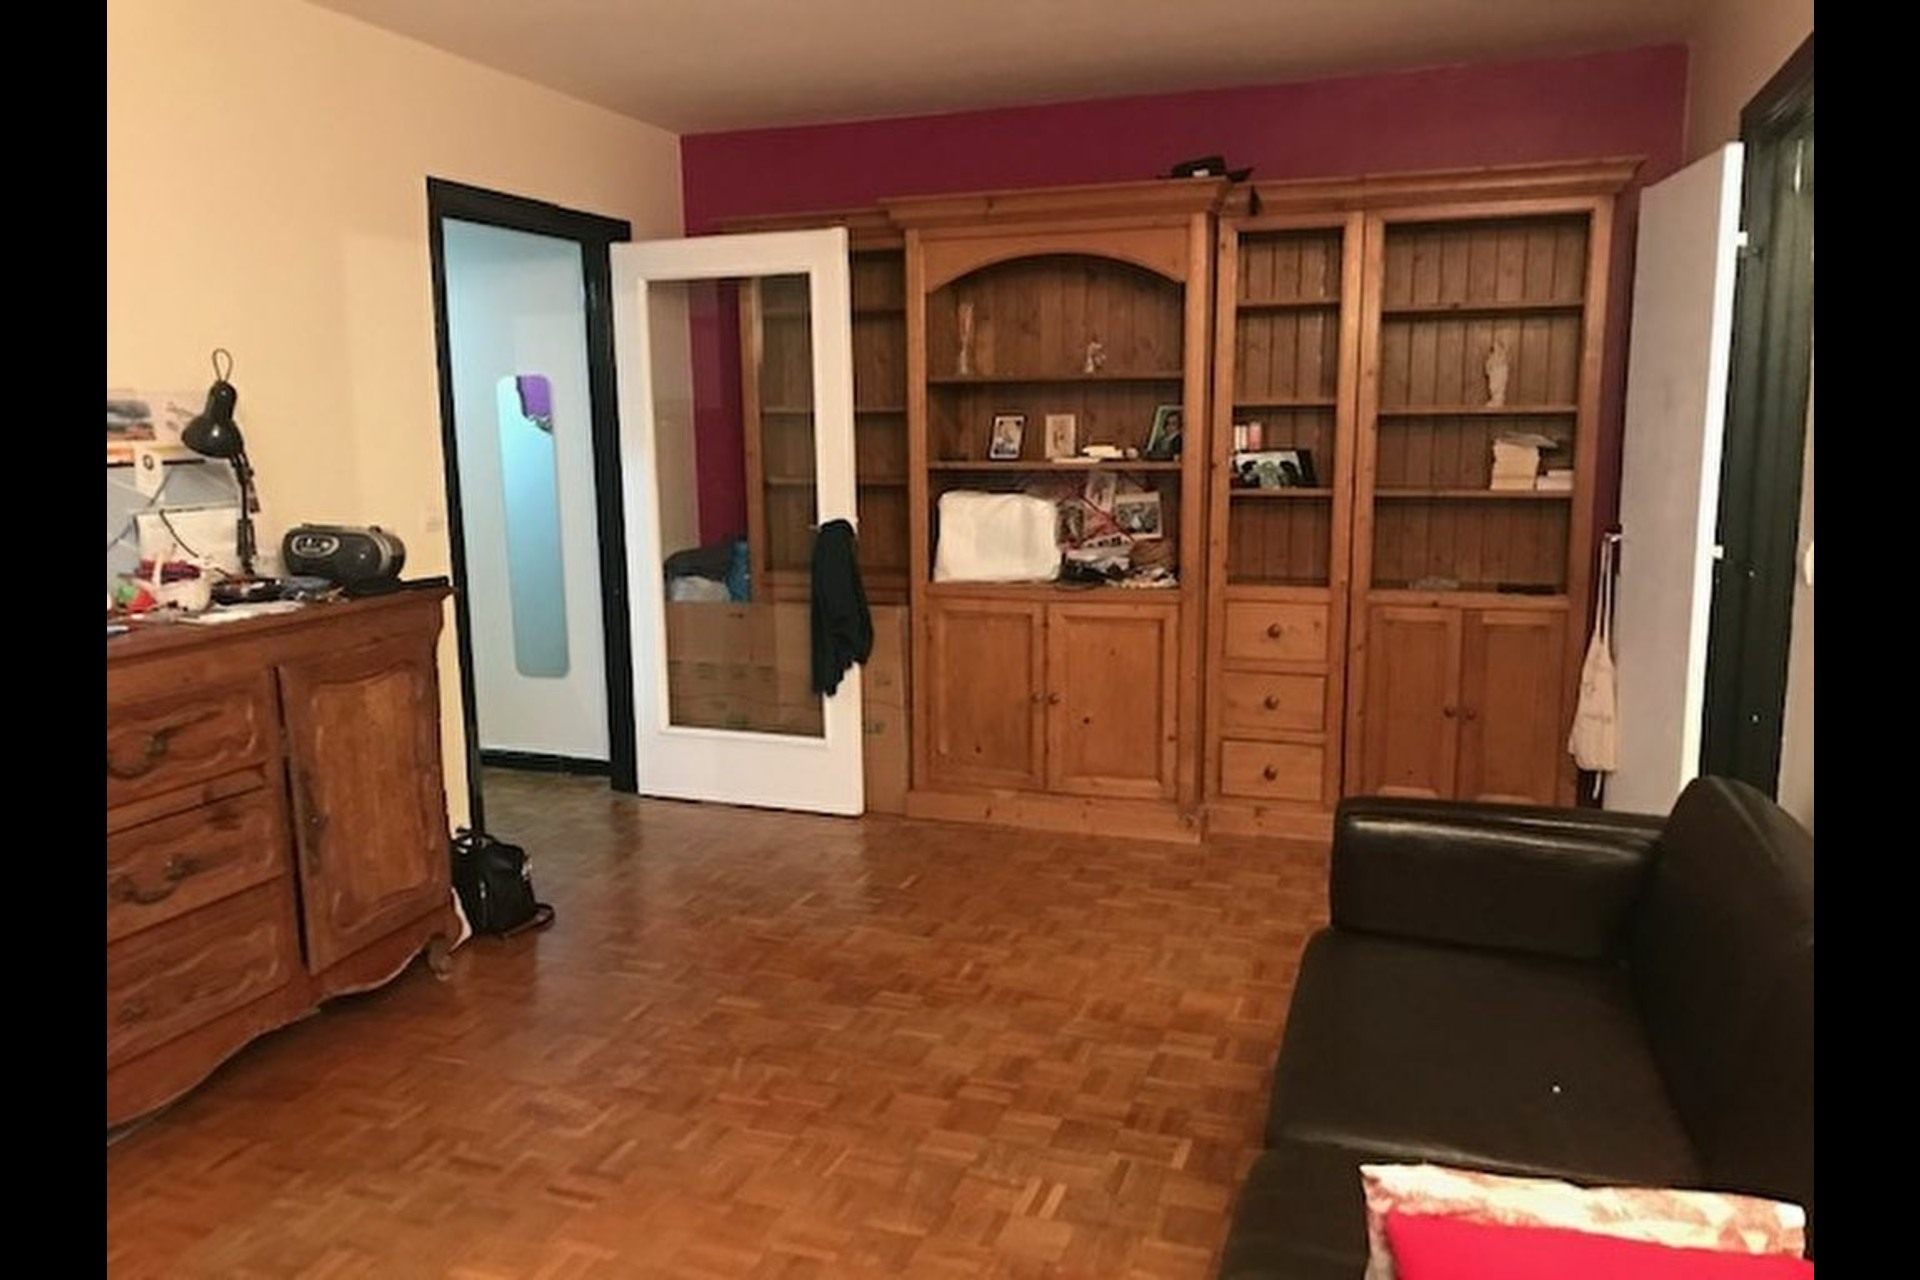 image 1 - Apartment For rent marly le roi - 2 rooms